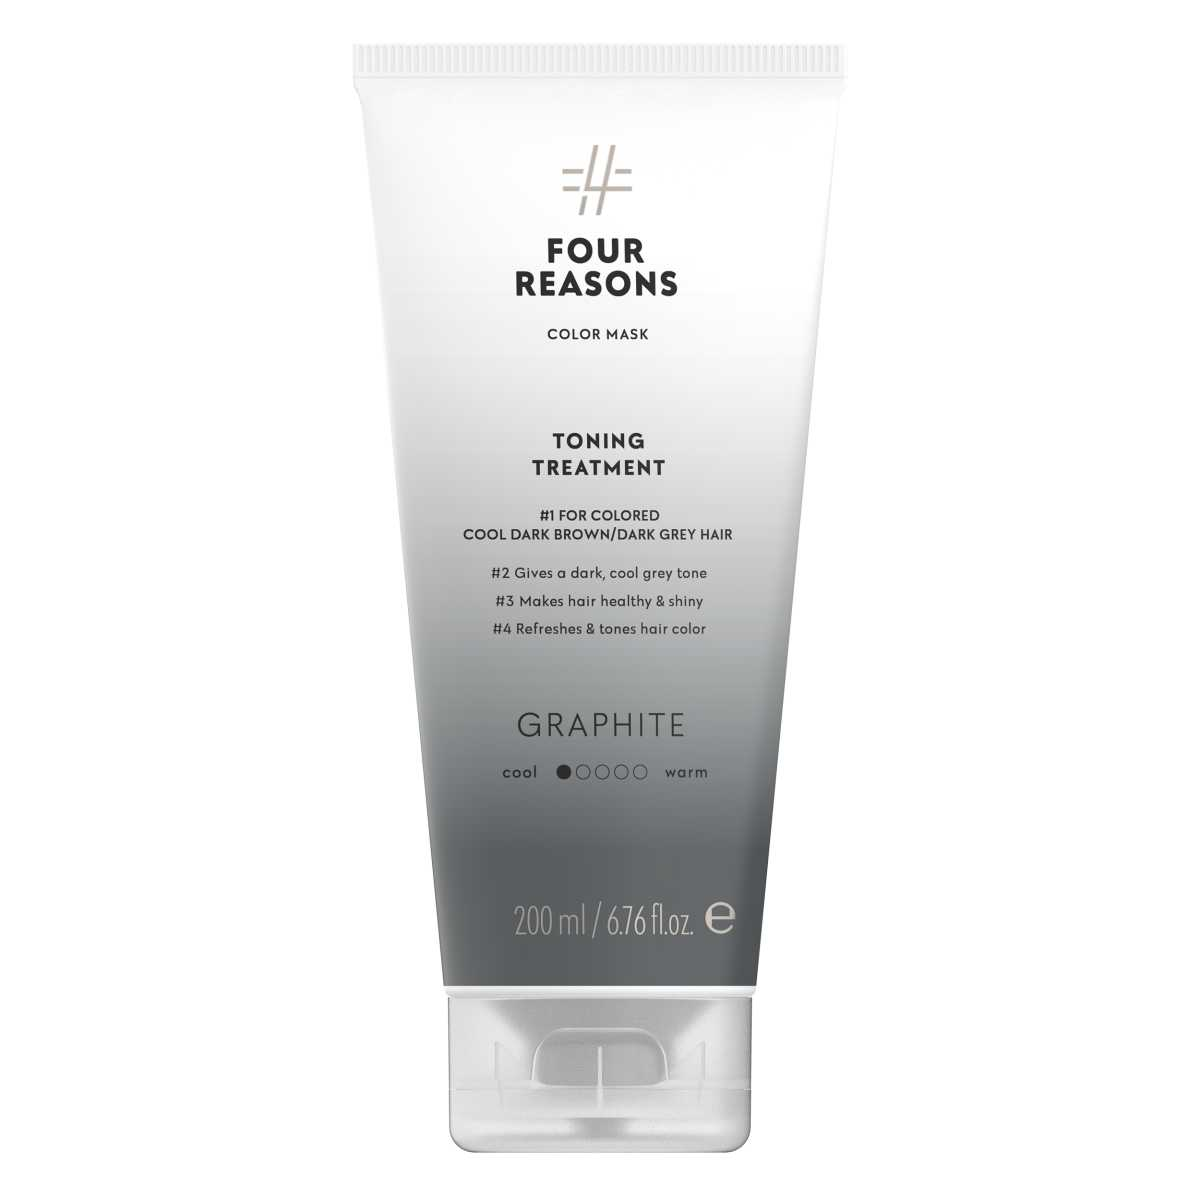 Four-Reasons-Color-Mask Graphite